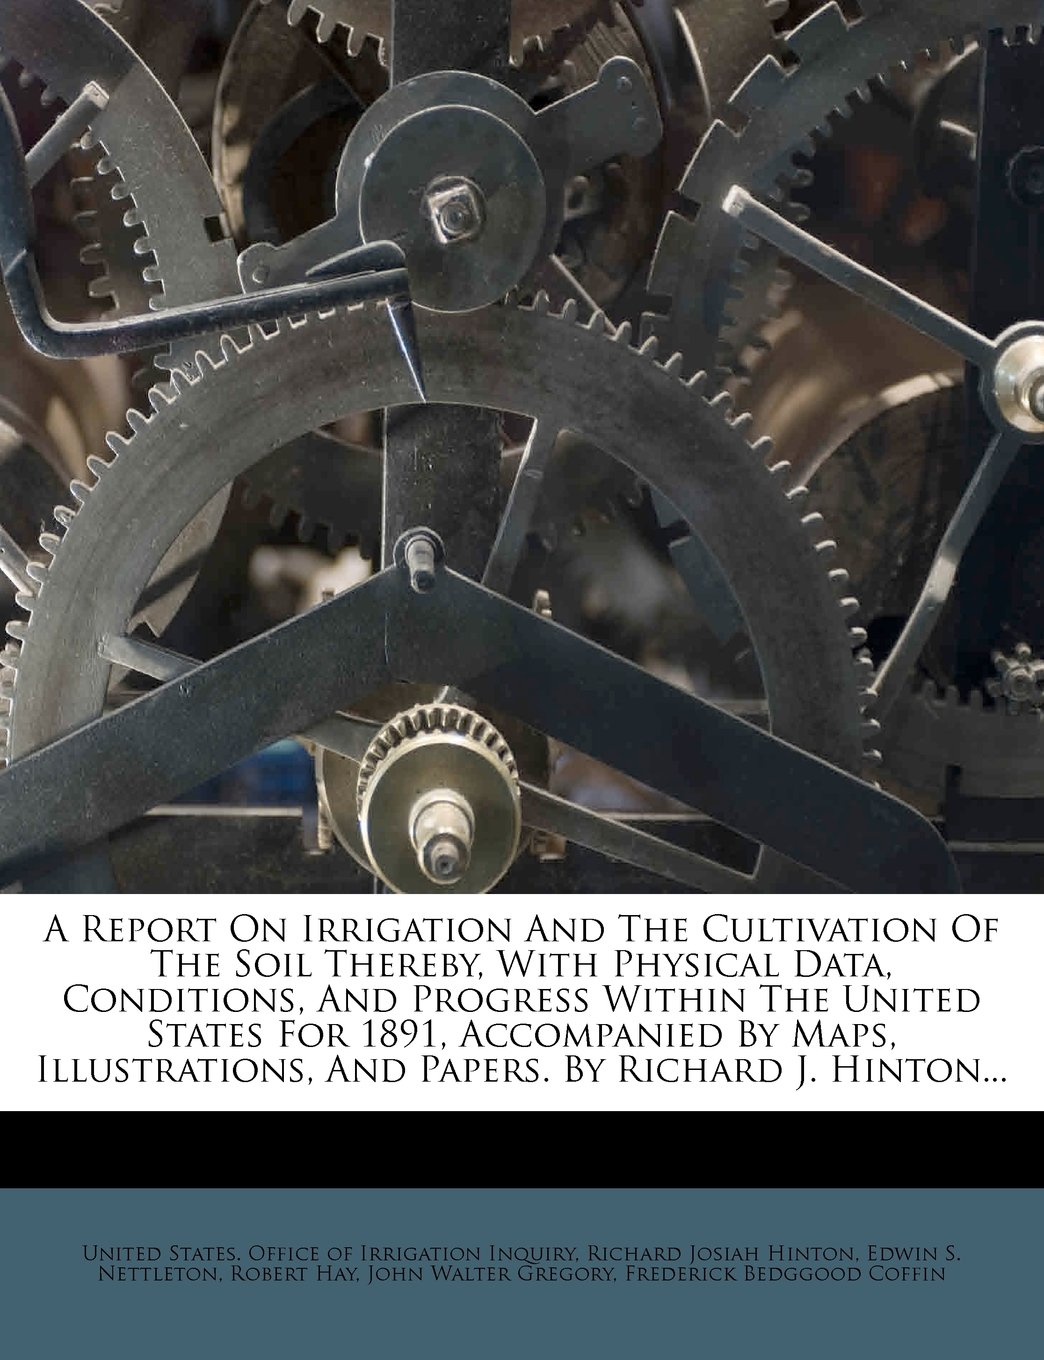 A Report On Irrigation And The Cultivation Of The Soil Thereby, With Physical Data, Conditions, And Progress Within The United States For 1891, ... And Papers. By Richard J. Hinton... ebook